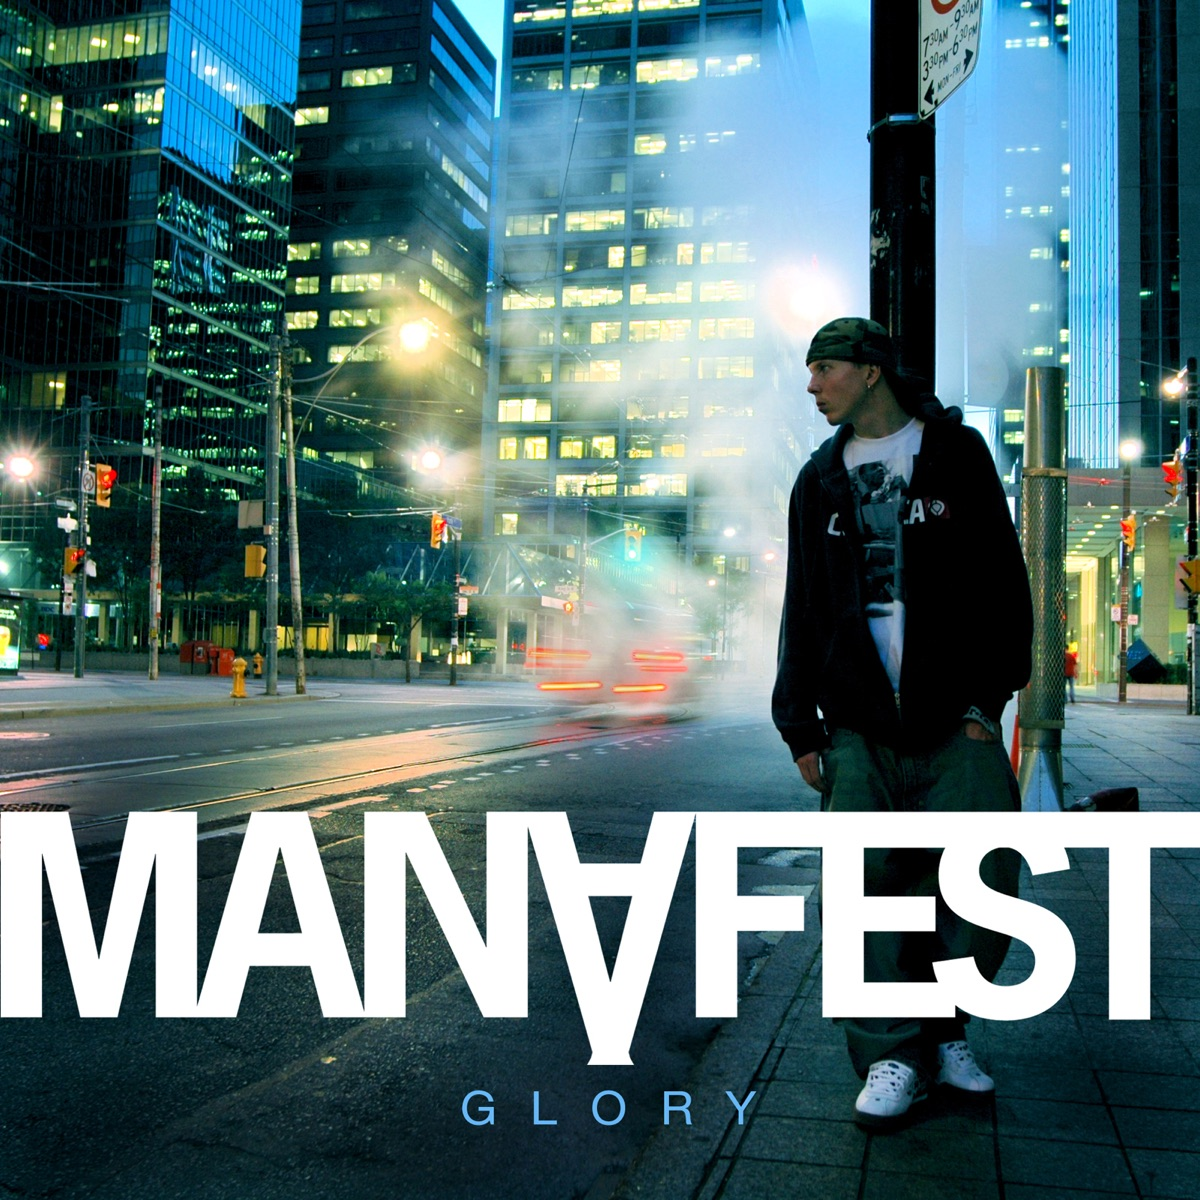 Glory Deluxe Edition Manafest CD cover